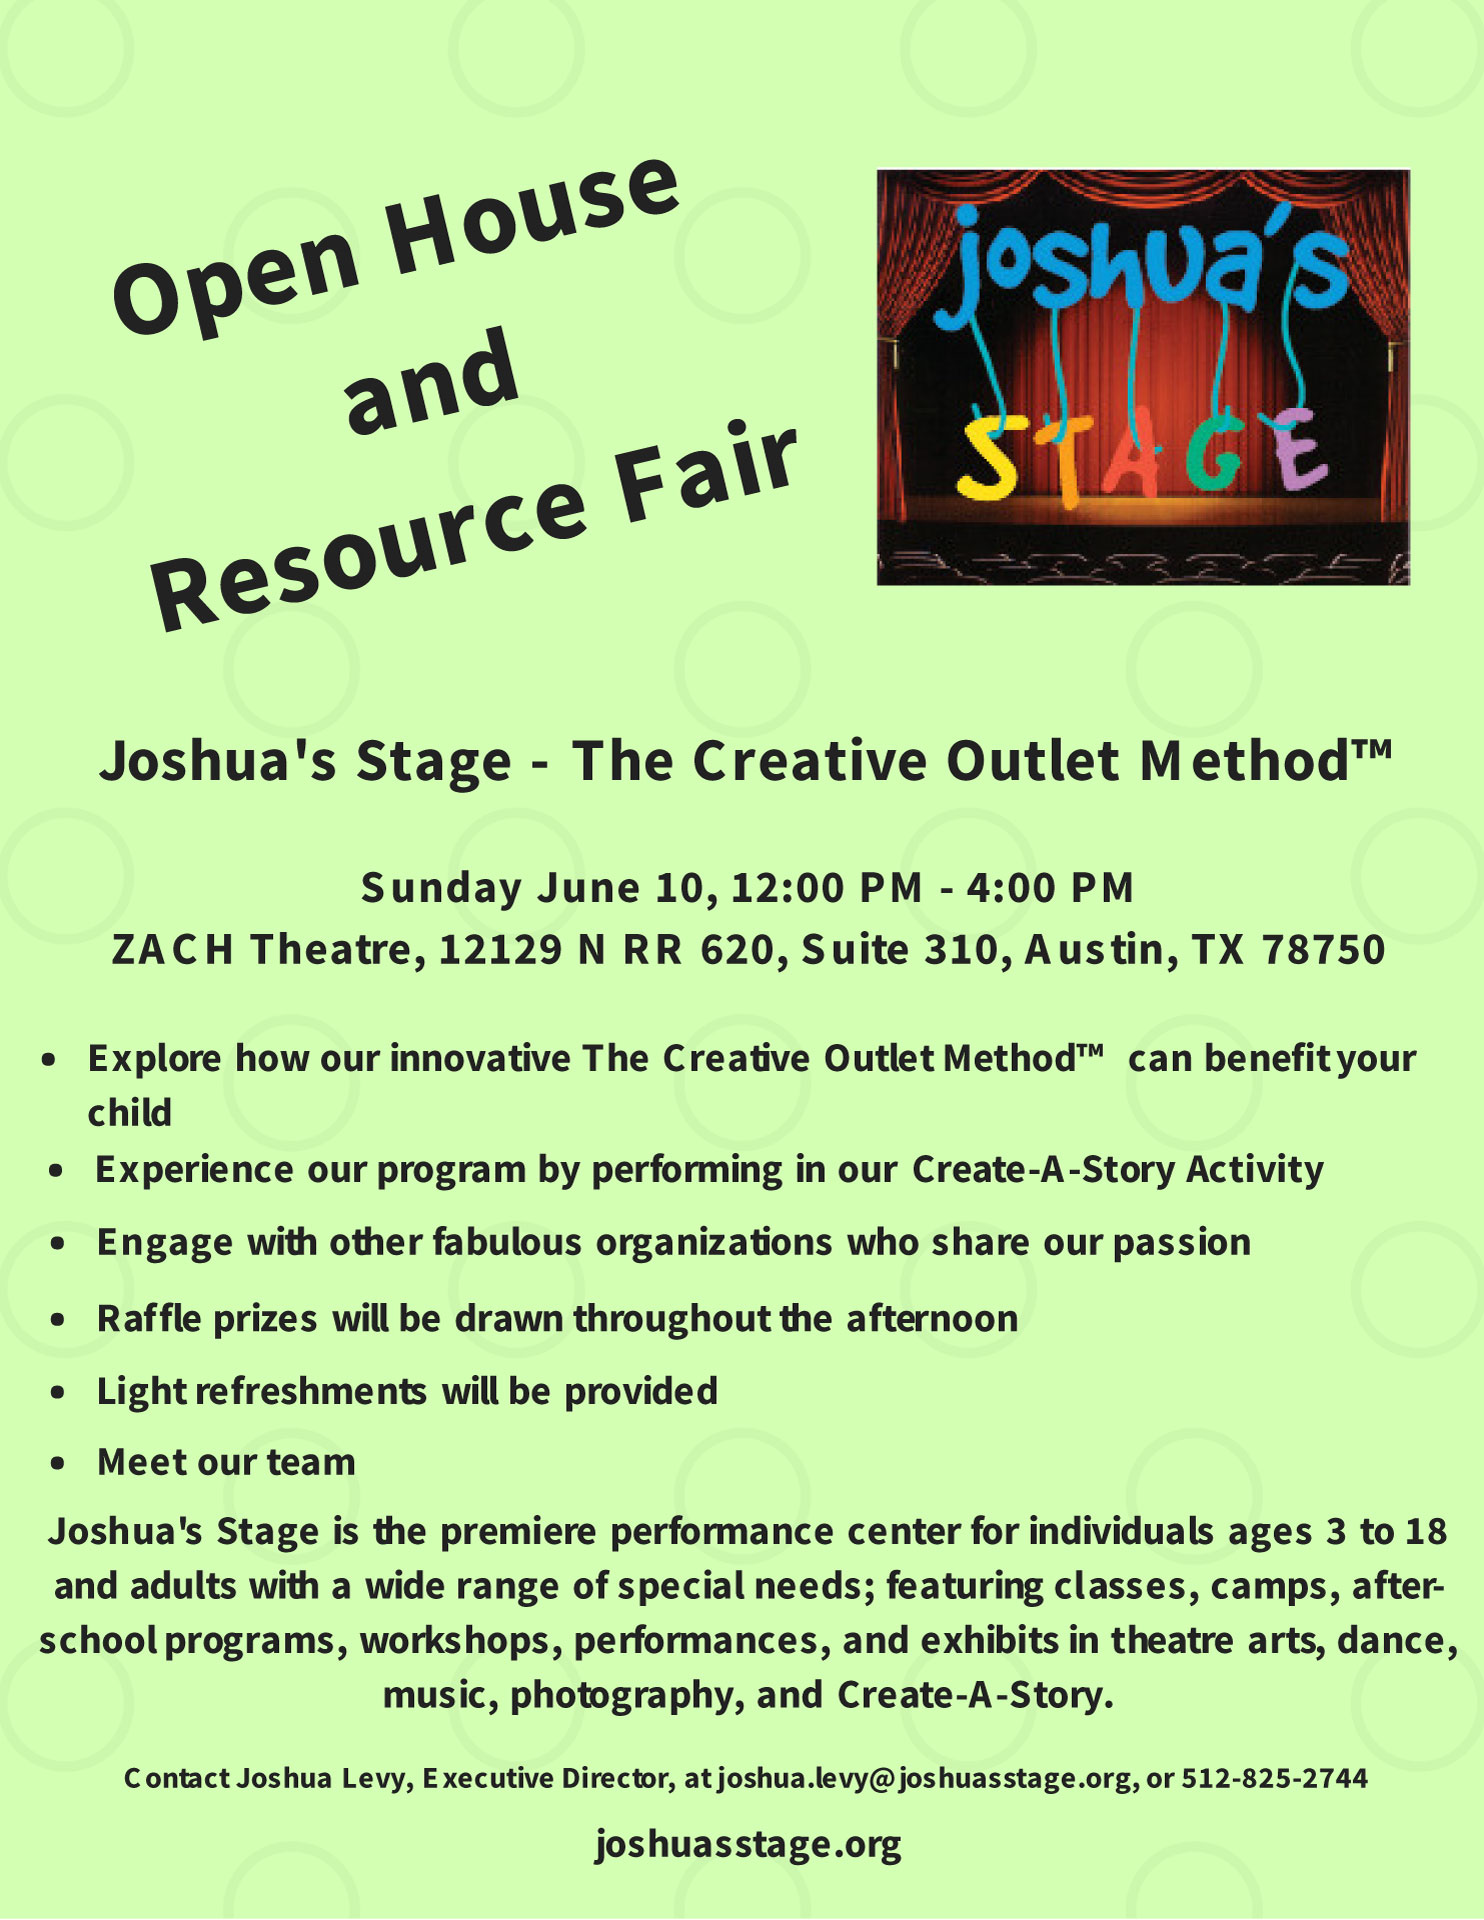 Open House and Resource Fair: Sunday June 10, 12:00 pm - 4:00 pm